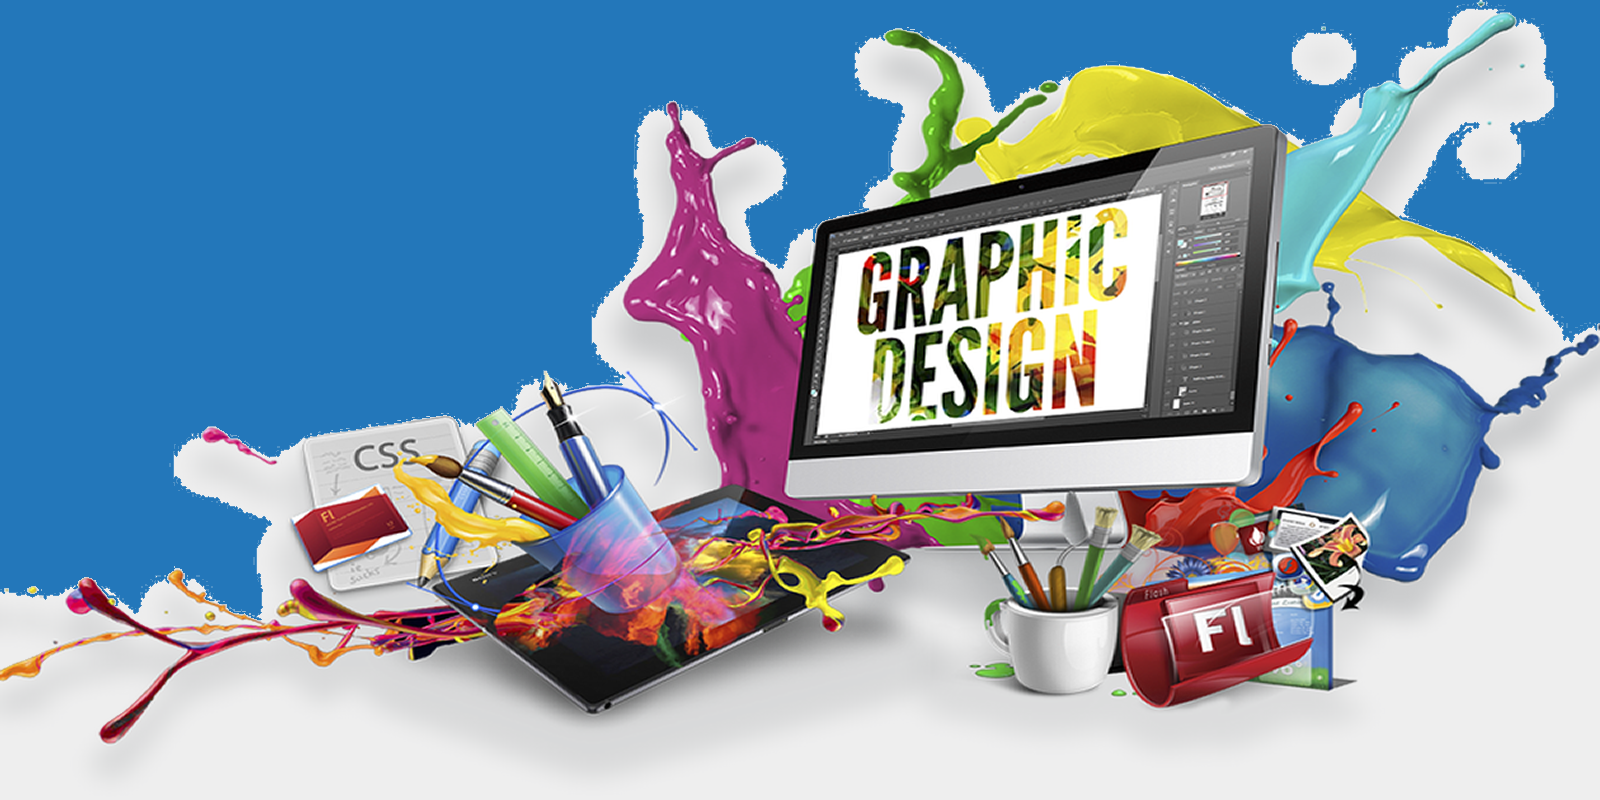 Amekom Systems your partner in Graphic design and printing